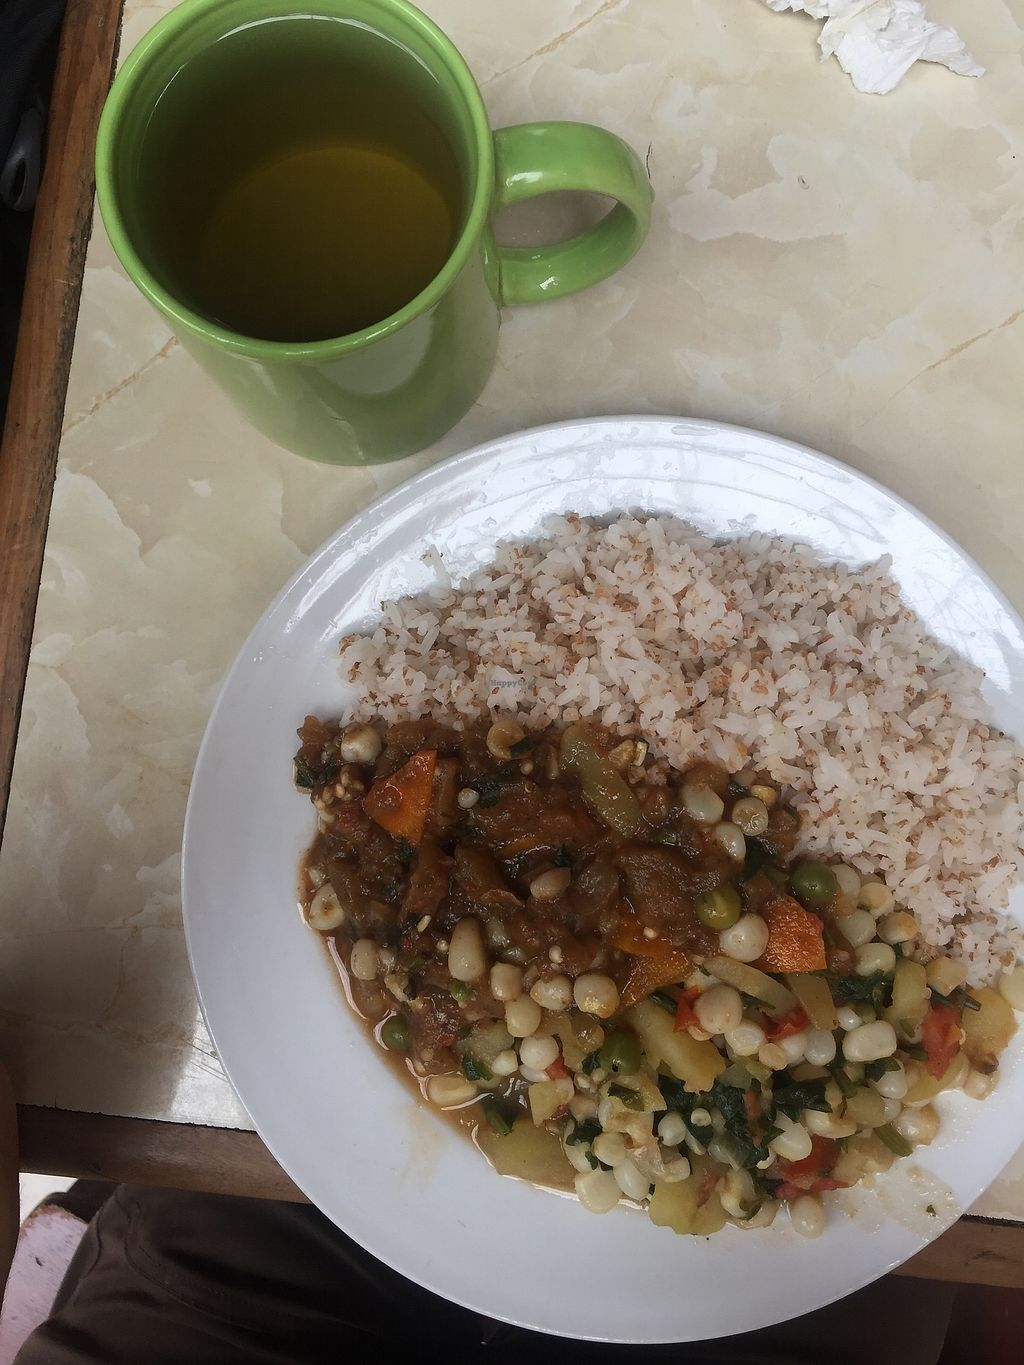 "Photo of Comedor Vegetariano  by <a href=""/members/profile/joegelay"">joegelay</a> <br/>Tea and main plate with mixed veggies, ""meaty"" celery, and barley rice.  <br/> January 17, 2018  - <a href='/contact/abuse/image/62120/347642'>Report</a>"